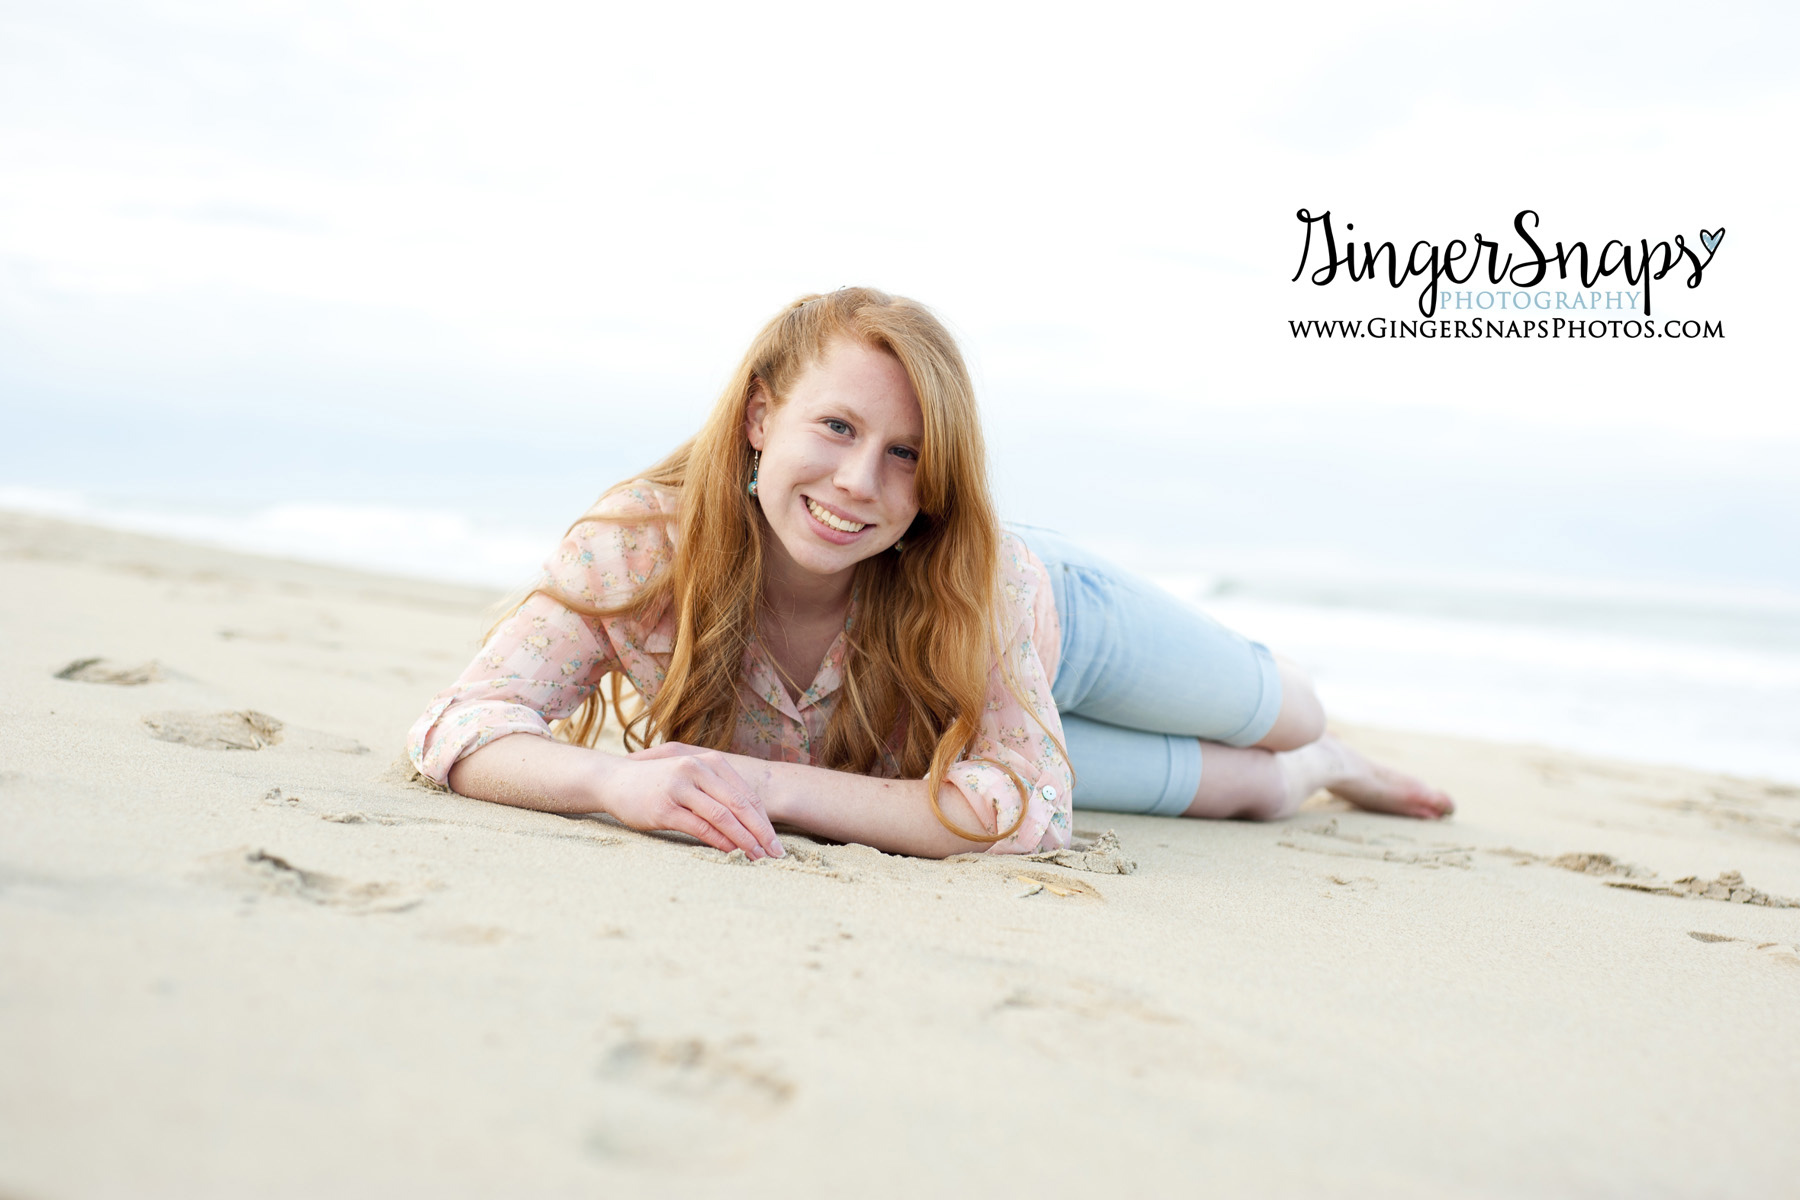 GingerSnaps Photography - 17.jpg